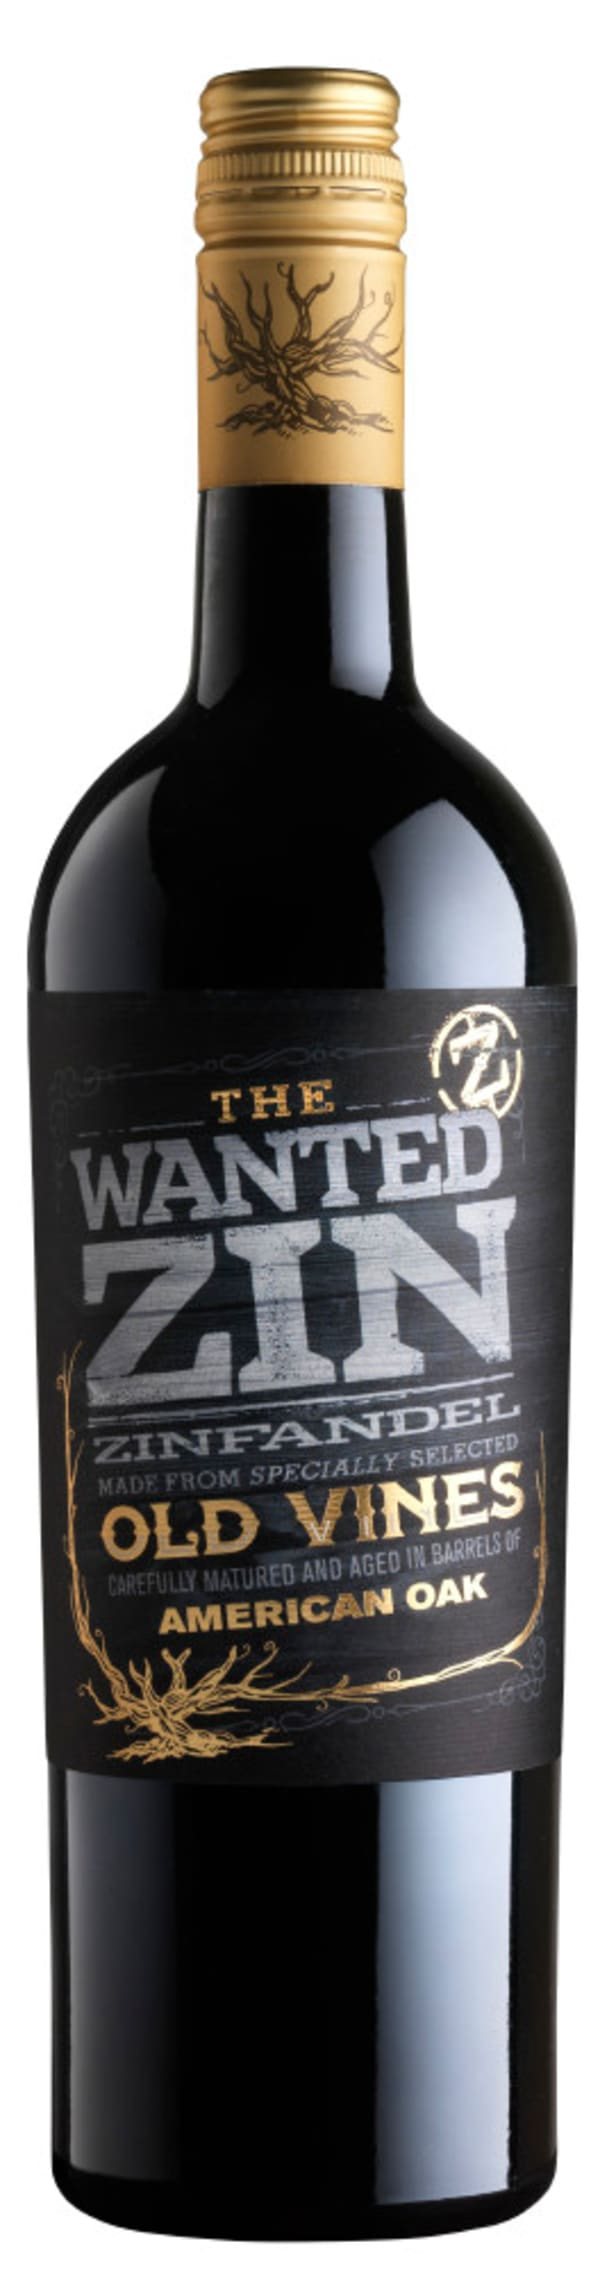 The Wanted Zin 2017